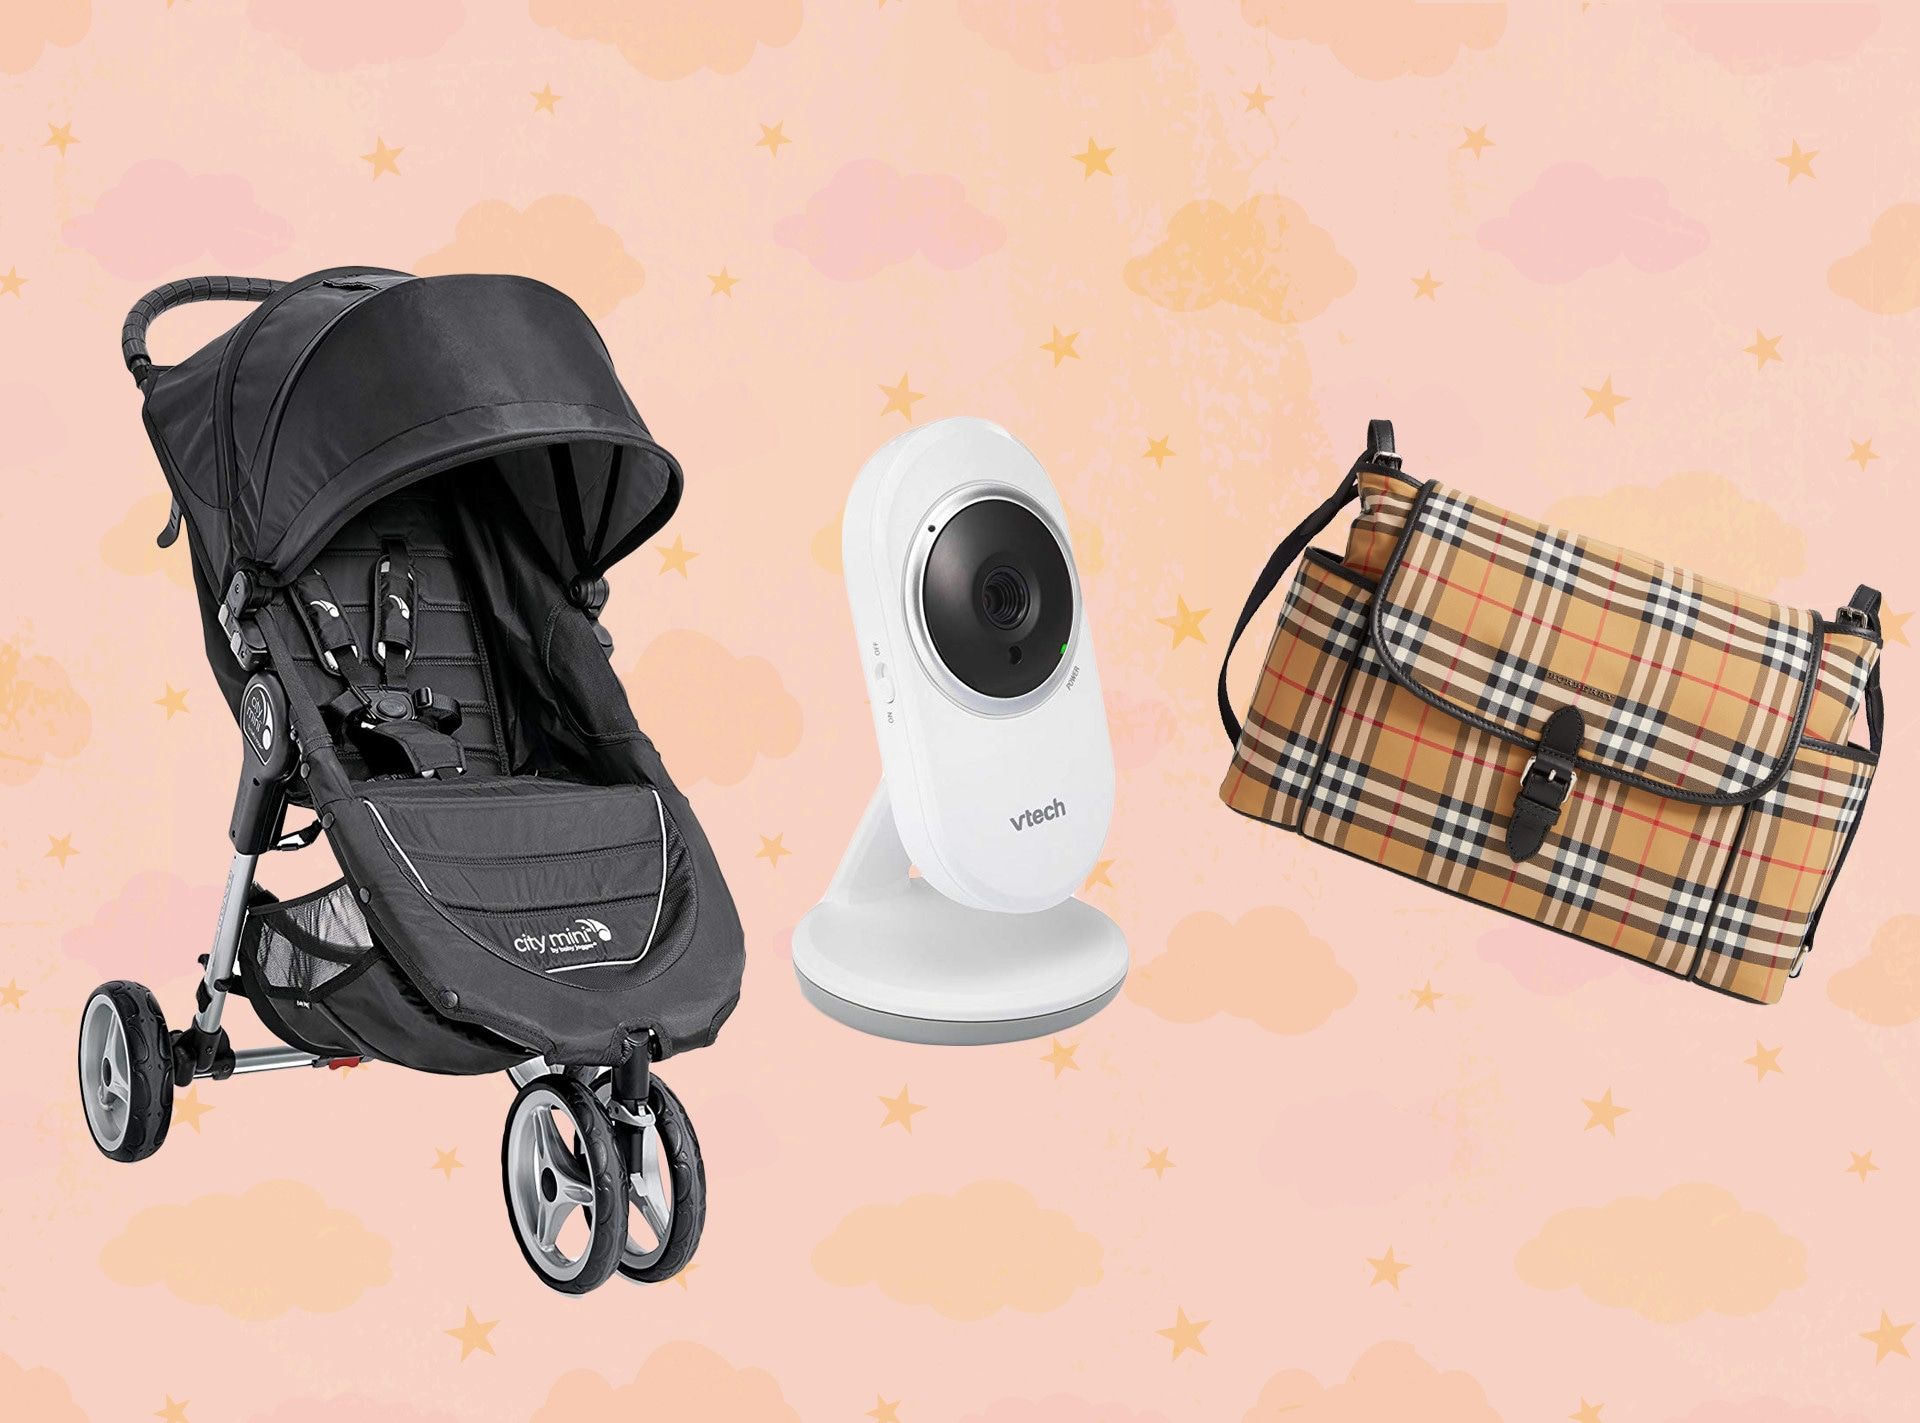 E-Comm: Best Baby Shower Gifts According to Hip Moms